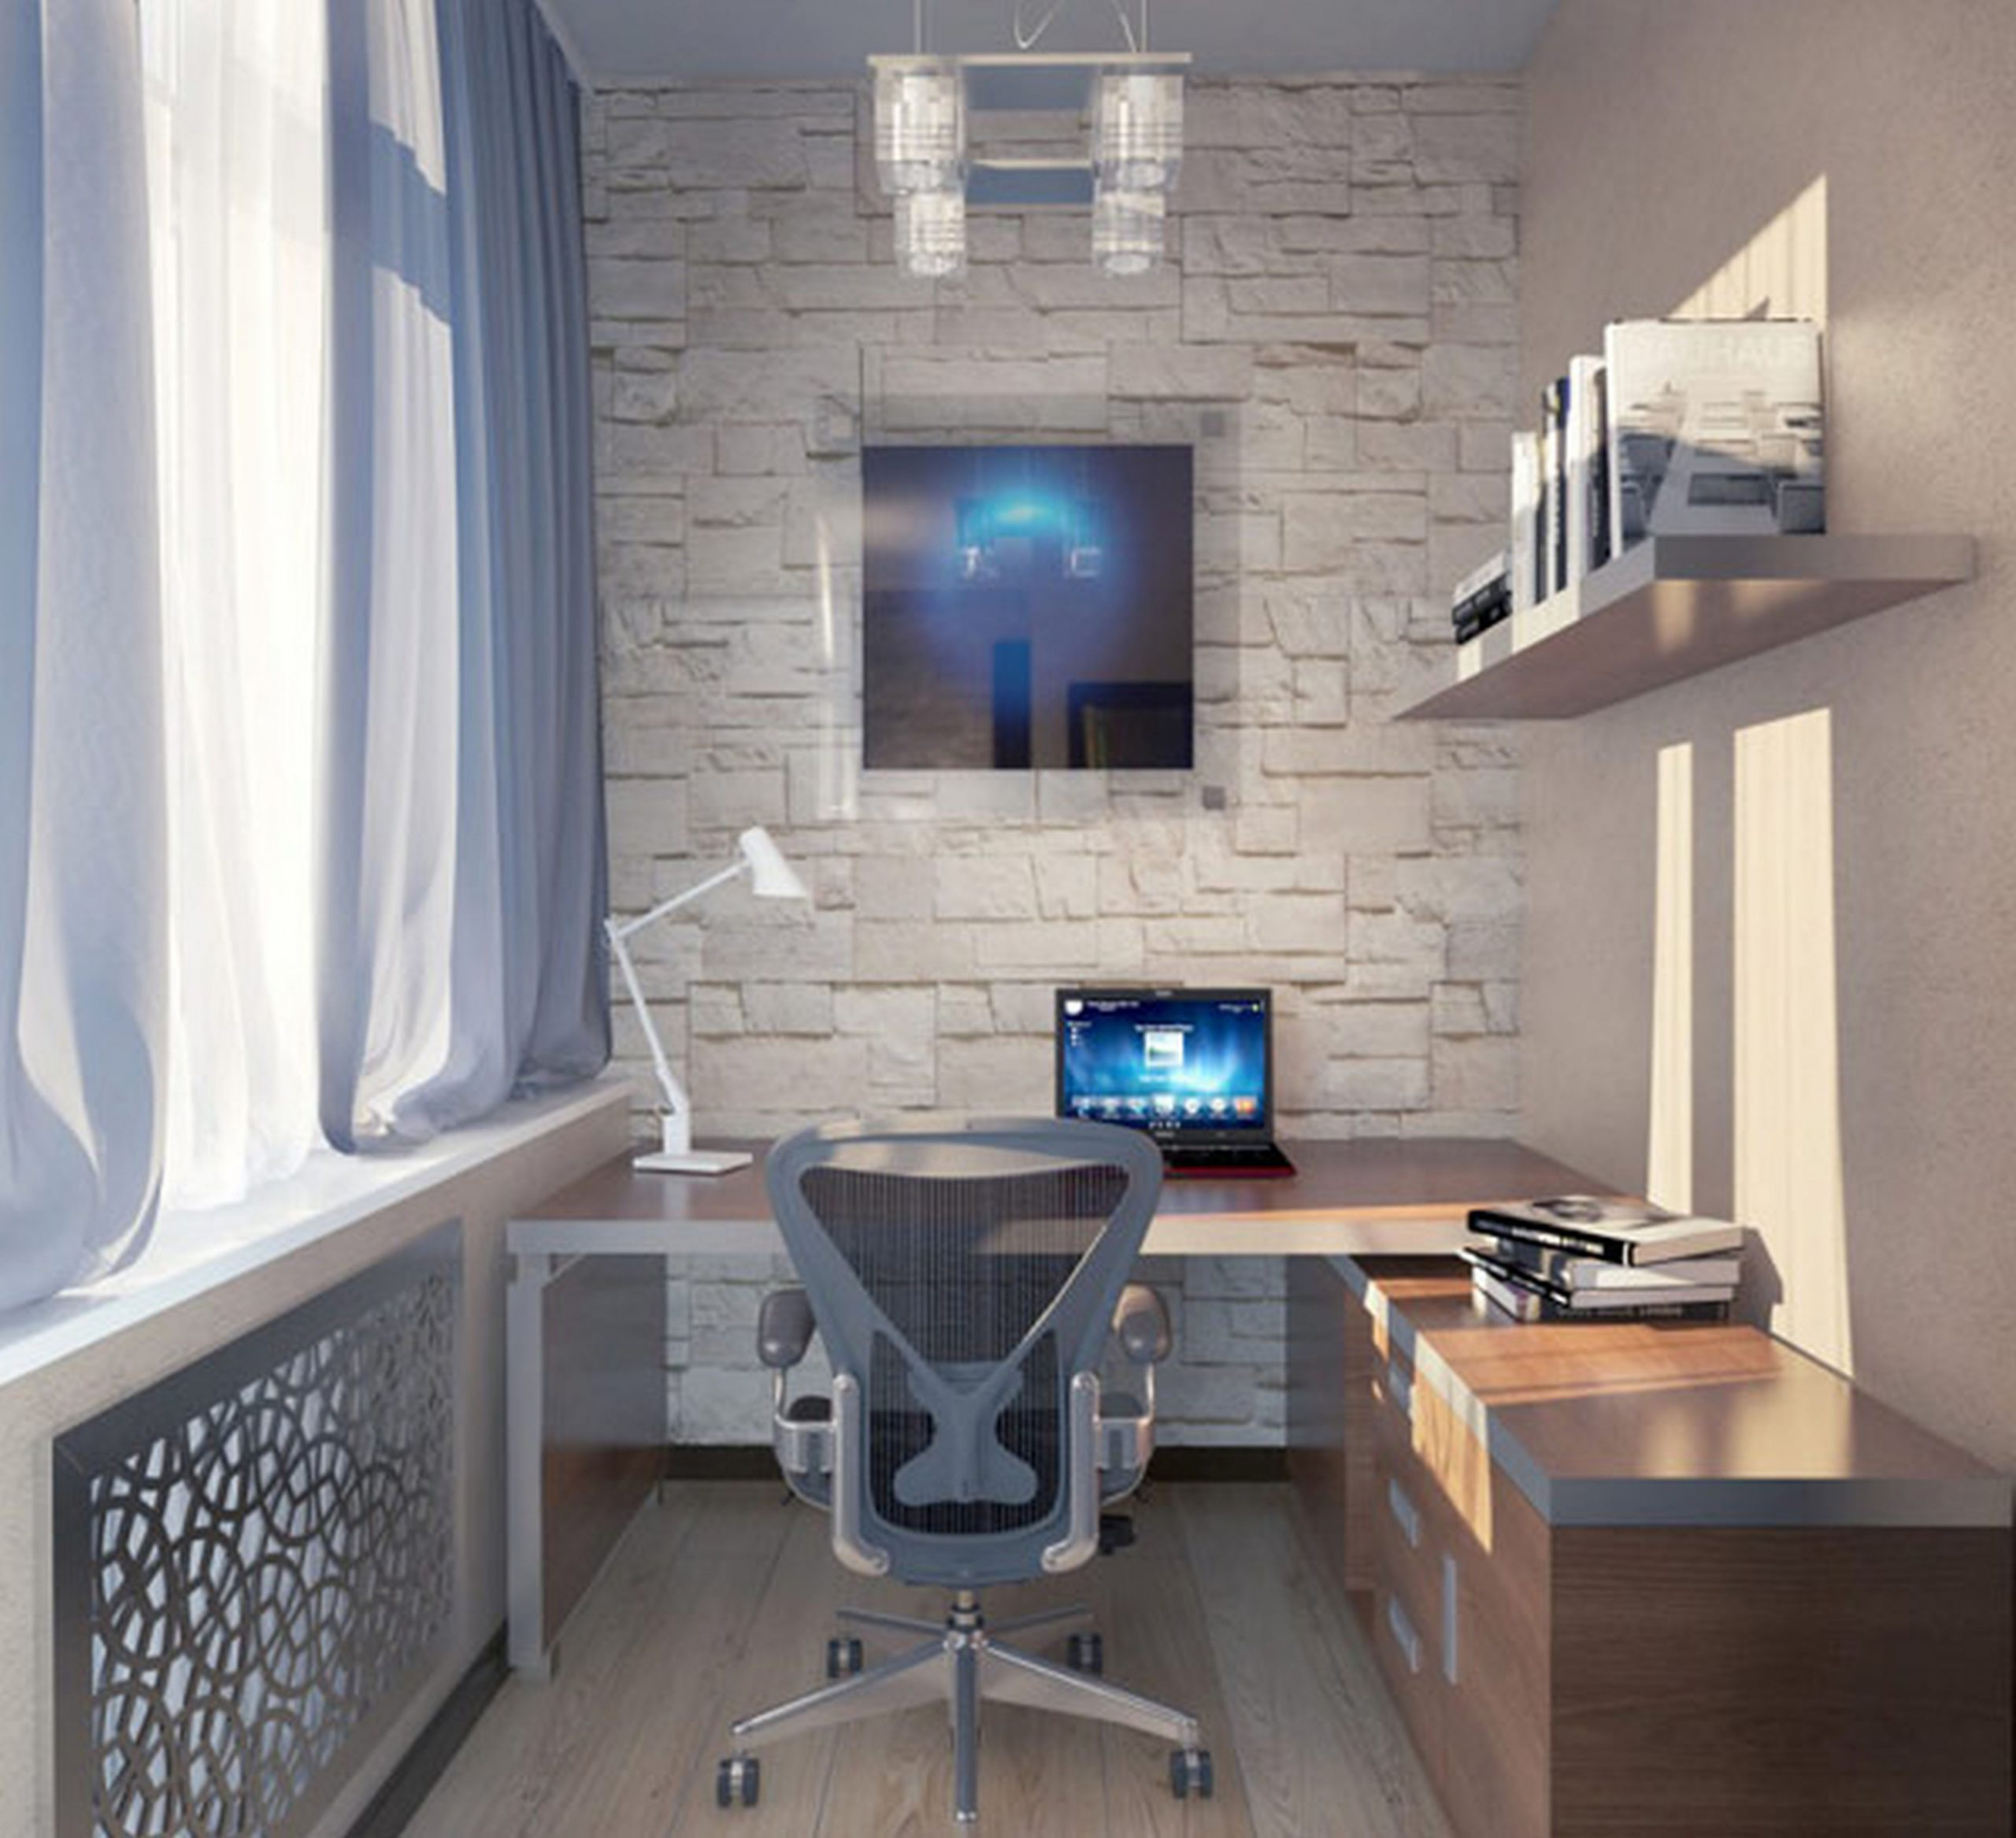 Home Office Best Ideas For Space Small Interior Design Gallery  - Home Office Ideas Gallery